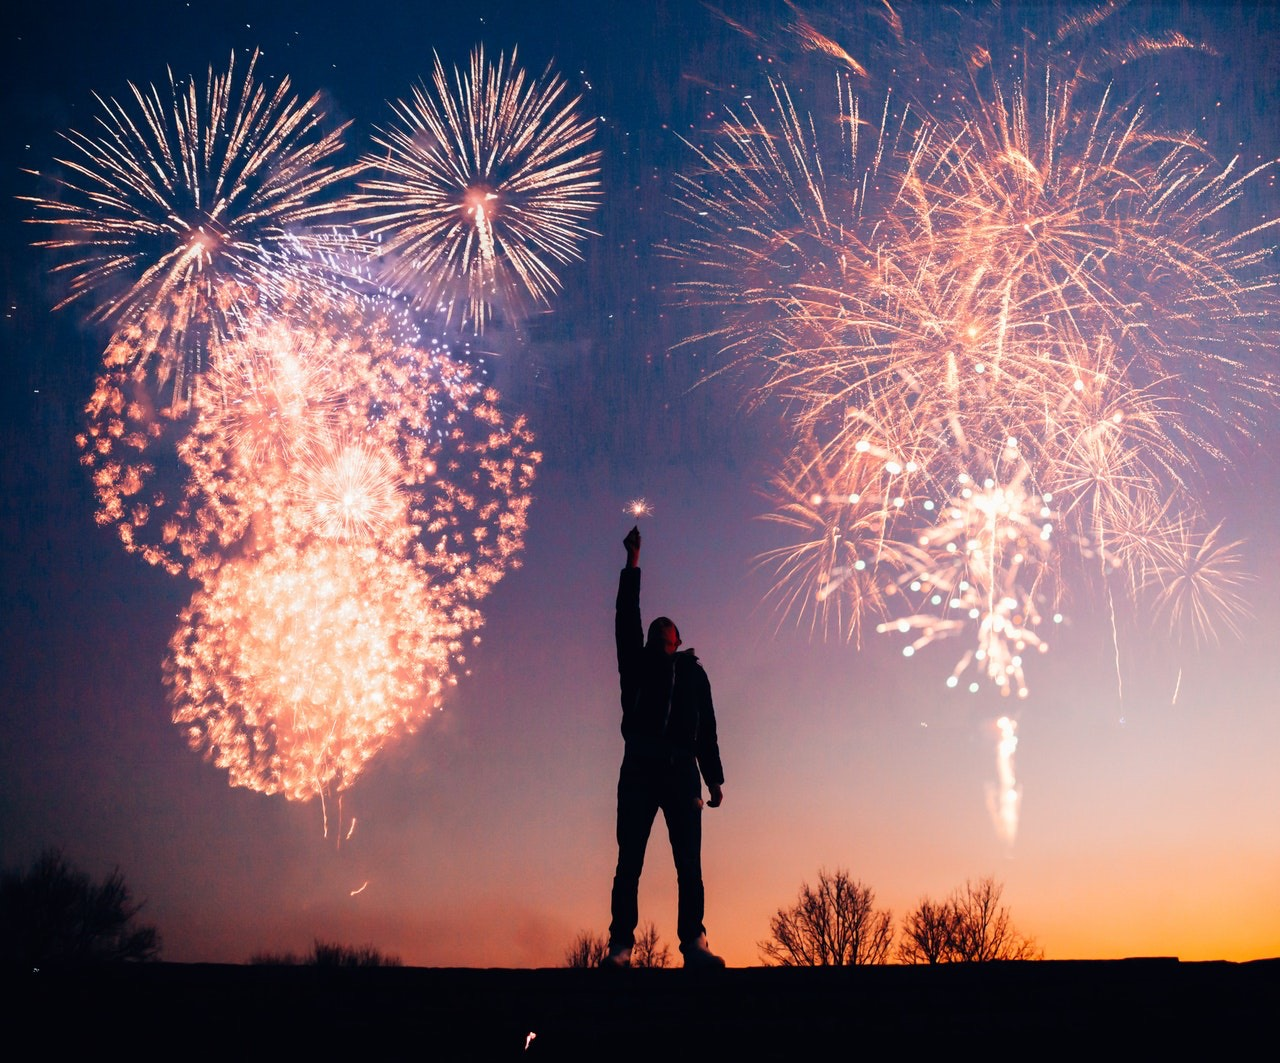 Steer Clear of Safety Hazards this Fourth of July